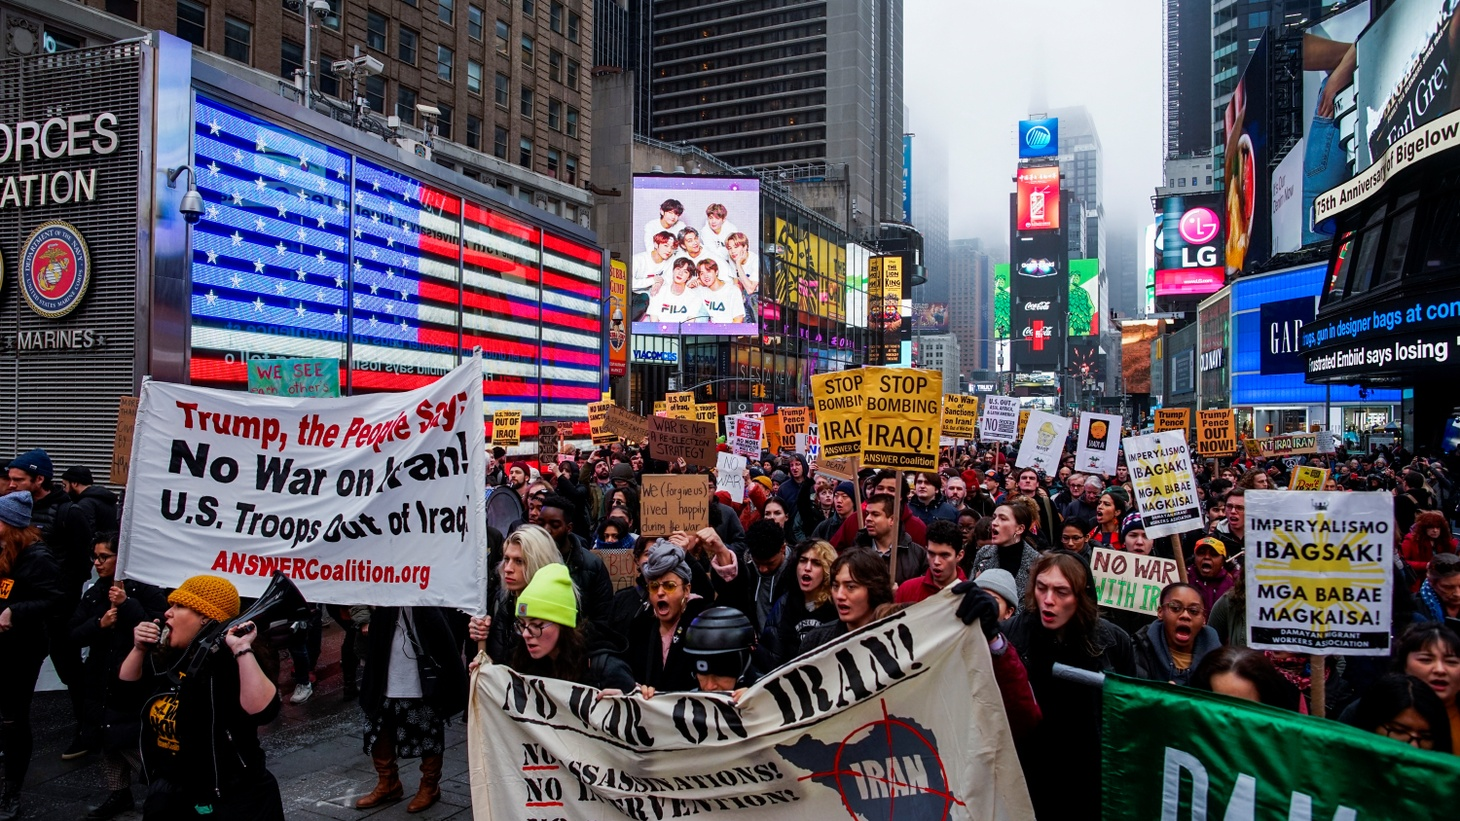 People marching in an anti-war protest amid increased tensions between the U.S. and Iran at Times Square in New York, U.S., January 4, 2020.